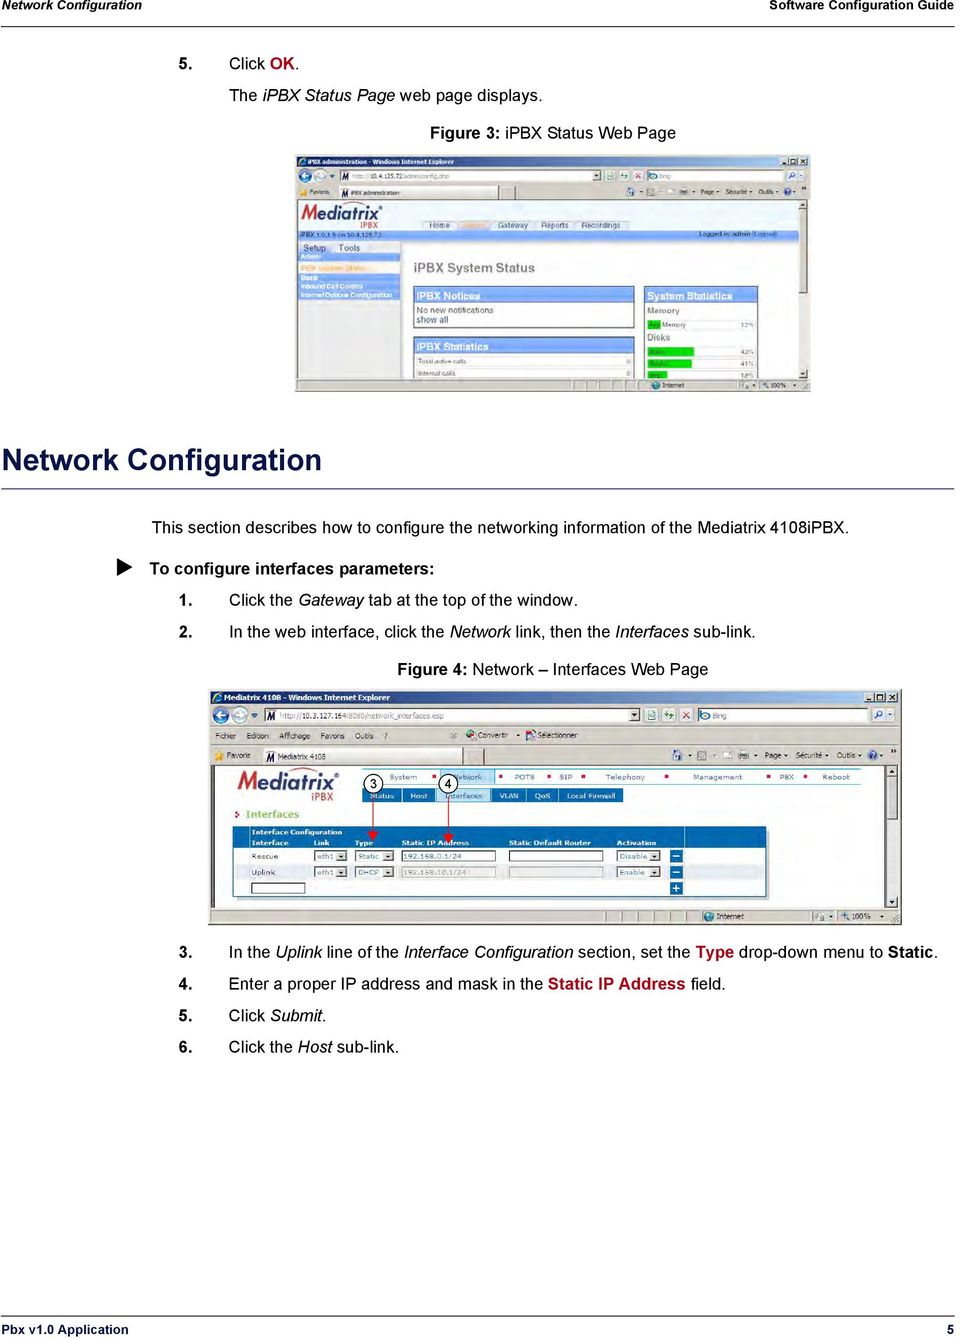 To configure interfaces parameters: 1. Click the Gateway tab at the top of the window. 2. In the web interface, click the Network link, then the Interfaces sub-link.